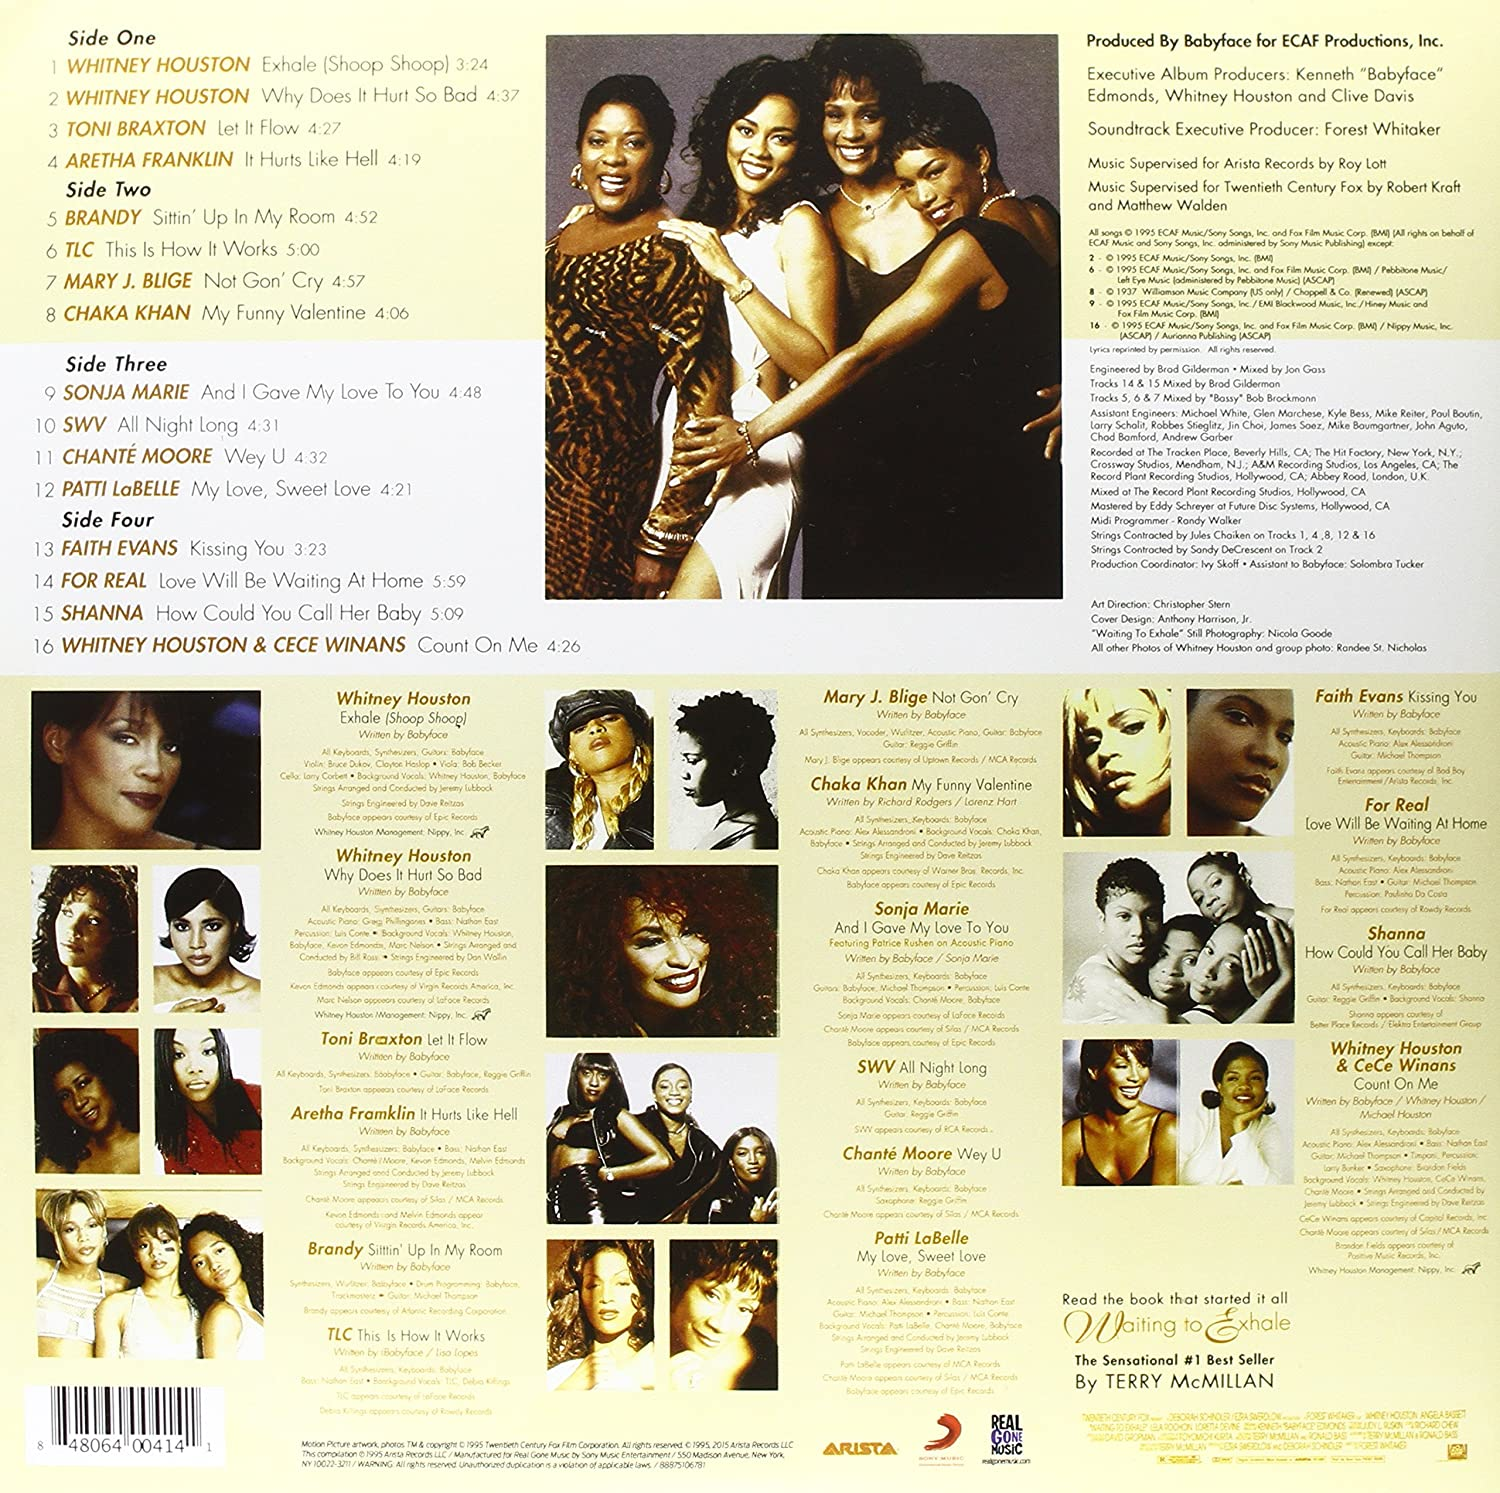 Various Artists   Waiting To Exhale: Original Soundtrack Album (Limited  Purple Vinyl Gatefold Edition)   Amazon.com Music